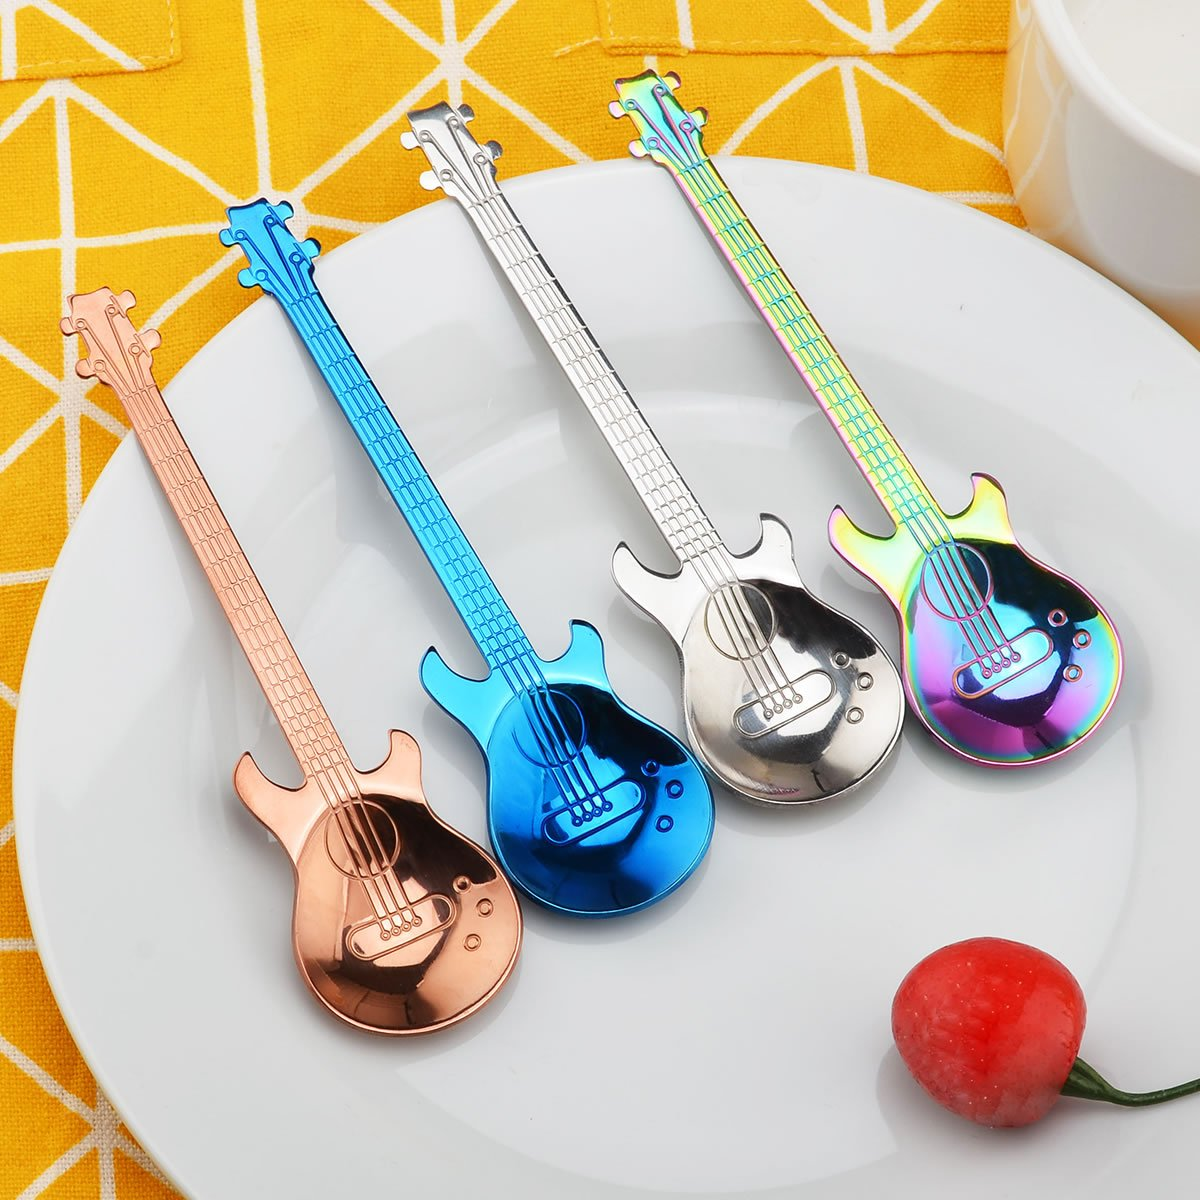 Oumosi Guitar Shaped Stainless steel Coffee Spoon Demitasse spoons dessert spoons Sugar Spoon Kitchen Cute Utensil Pack of 4